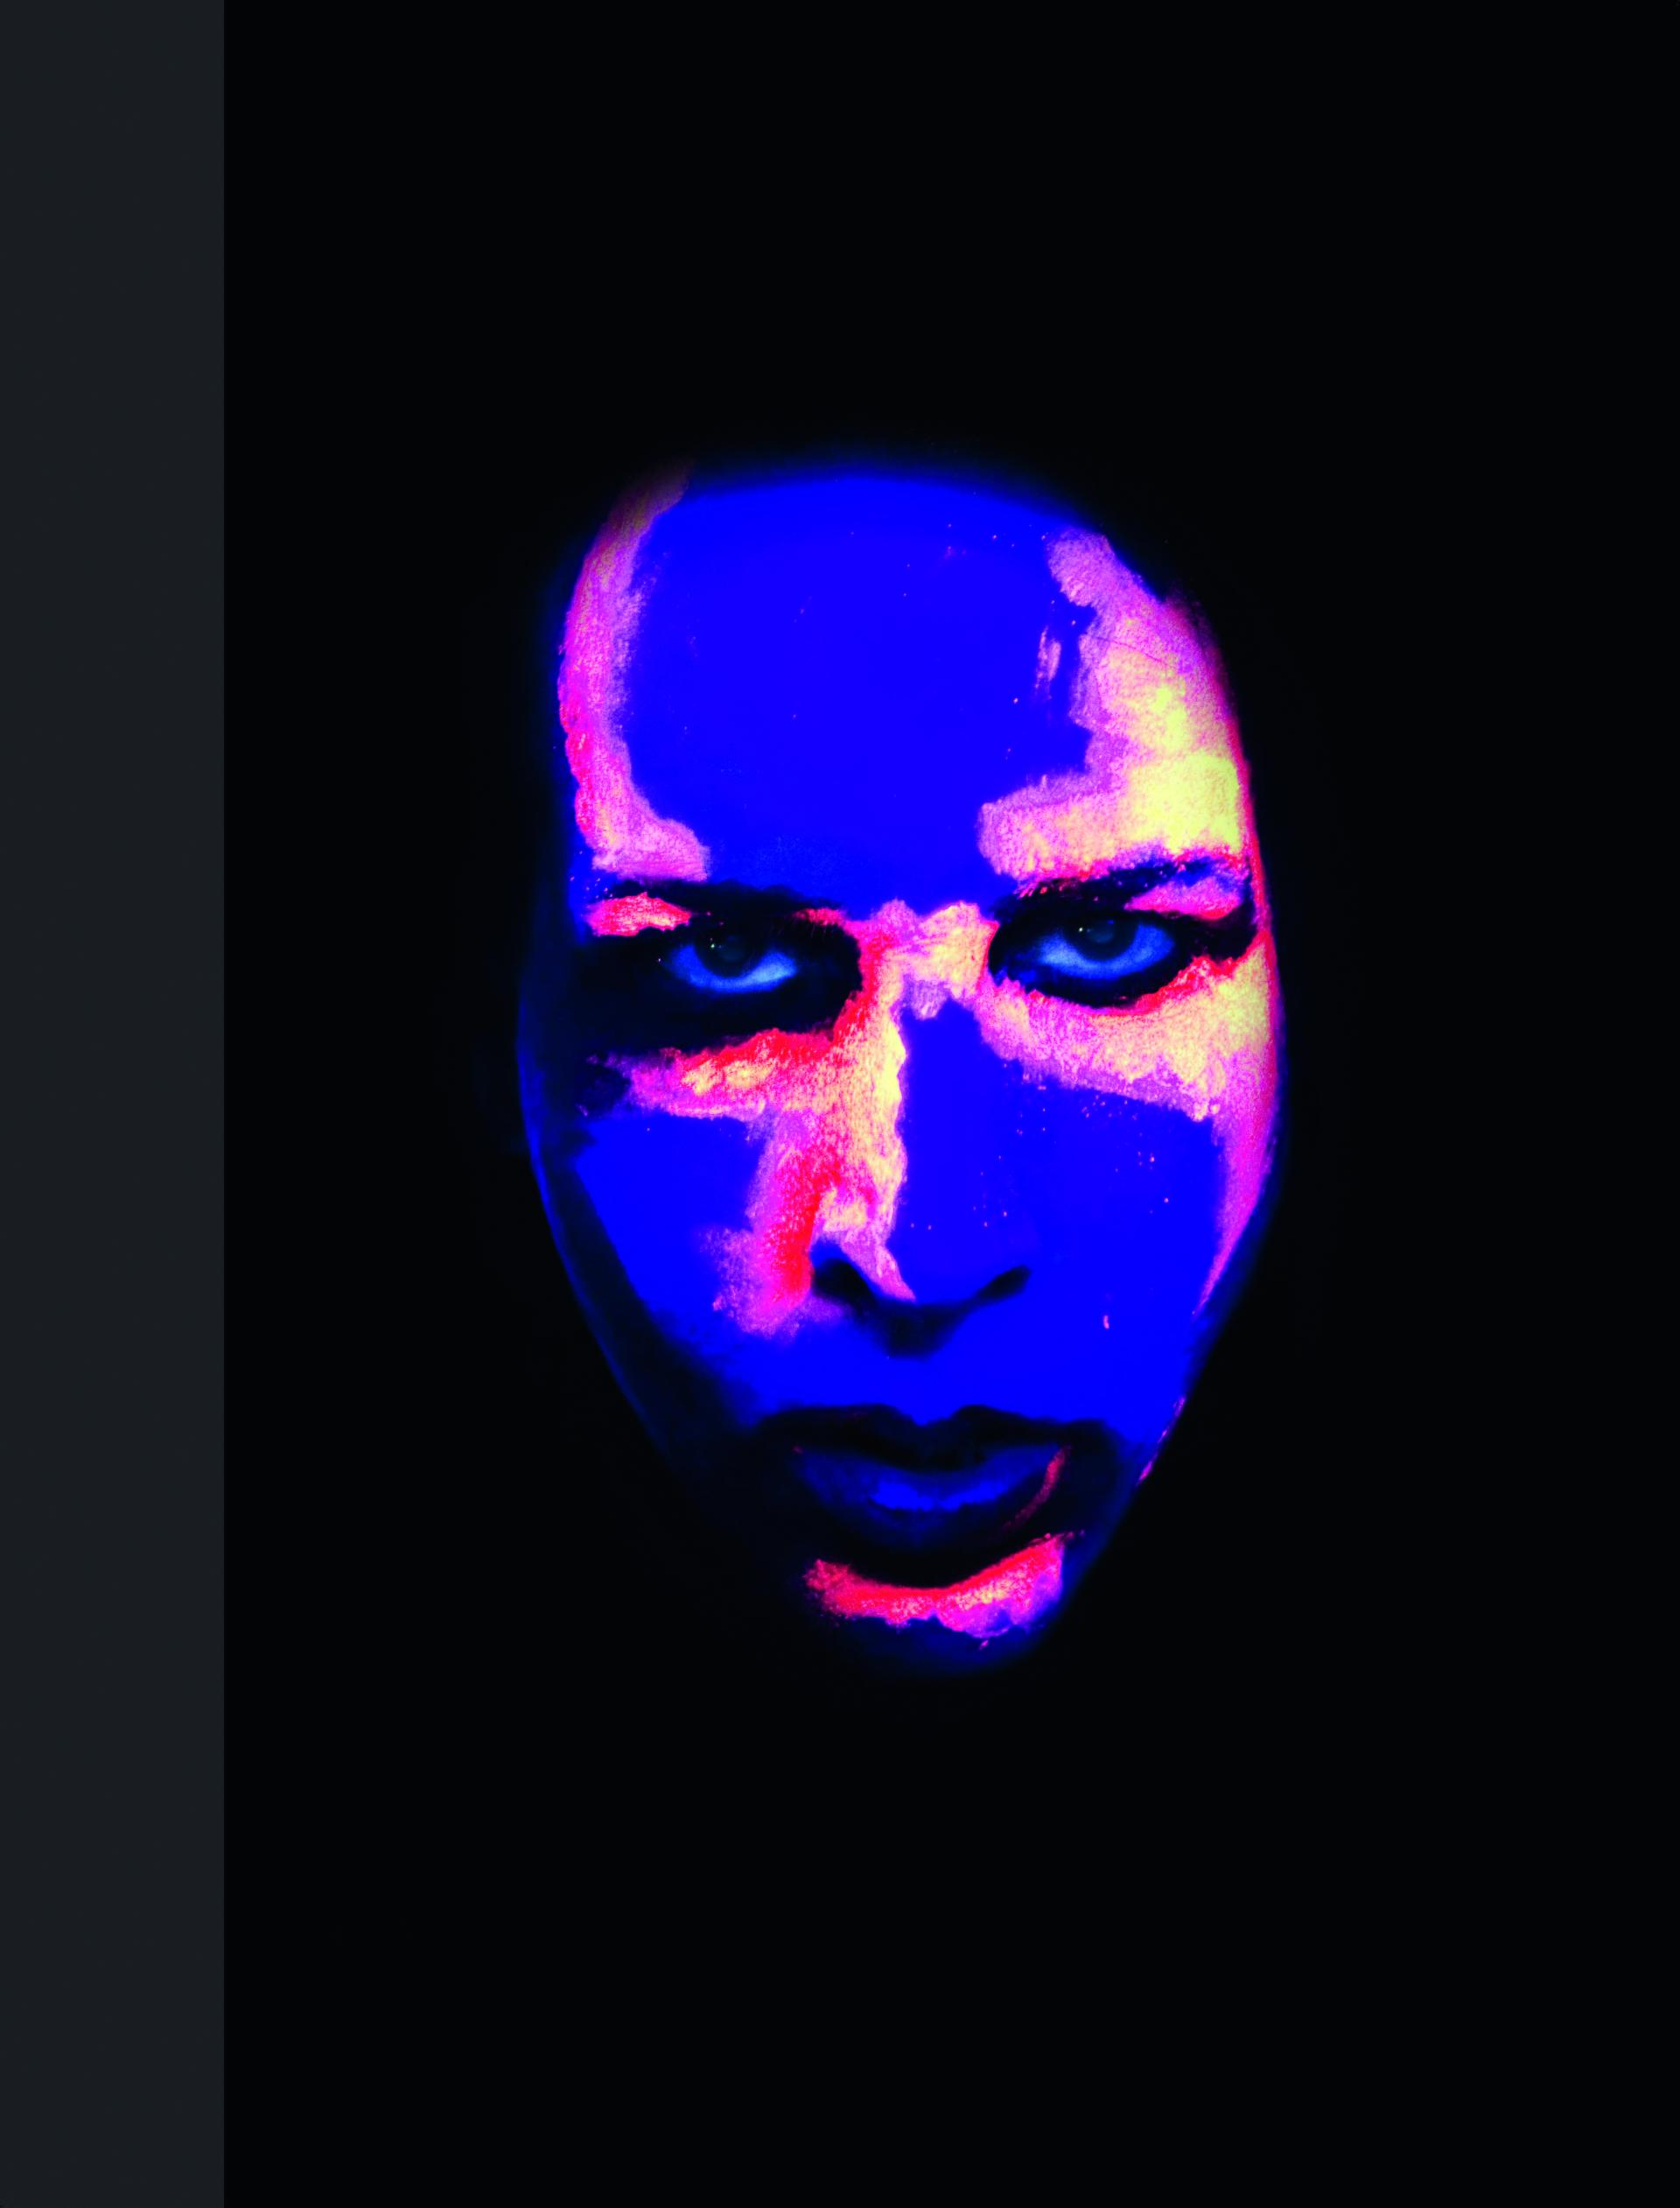 Marilyn Manson: 21 Years in Hell by Perou